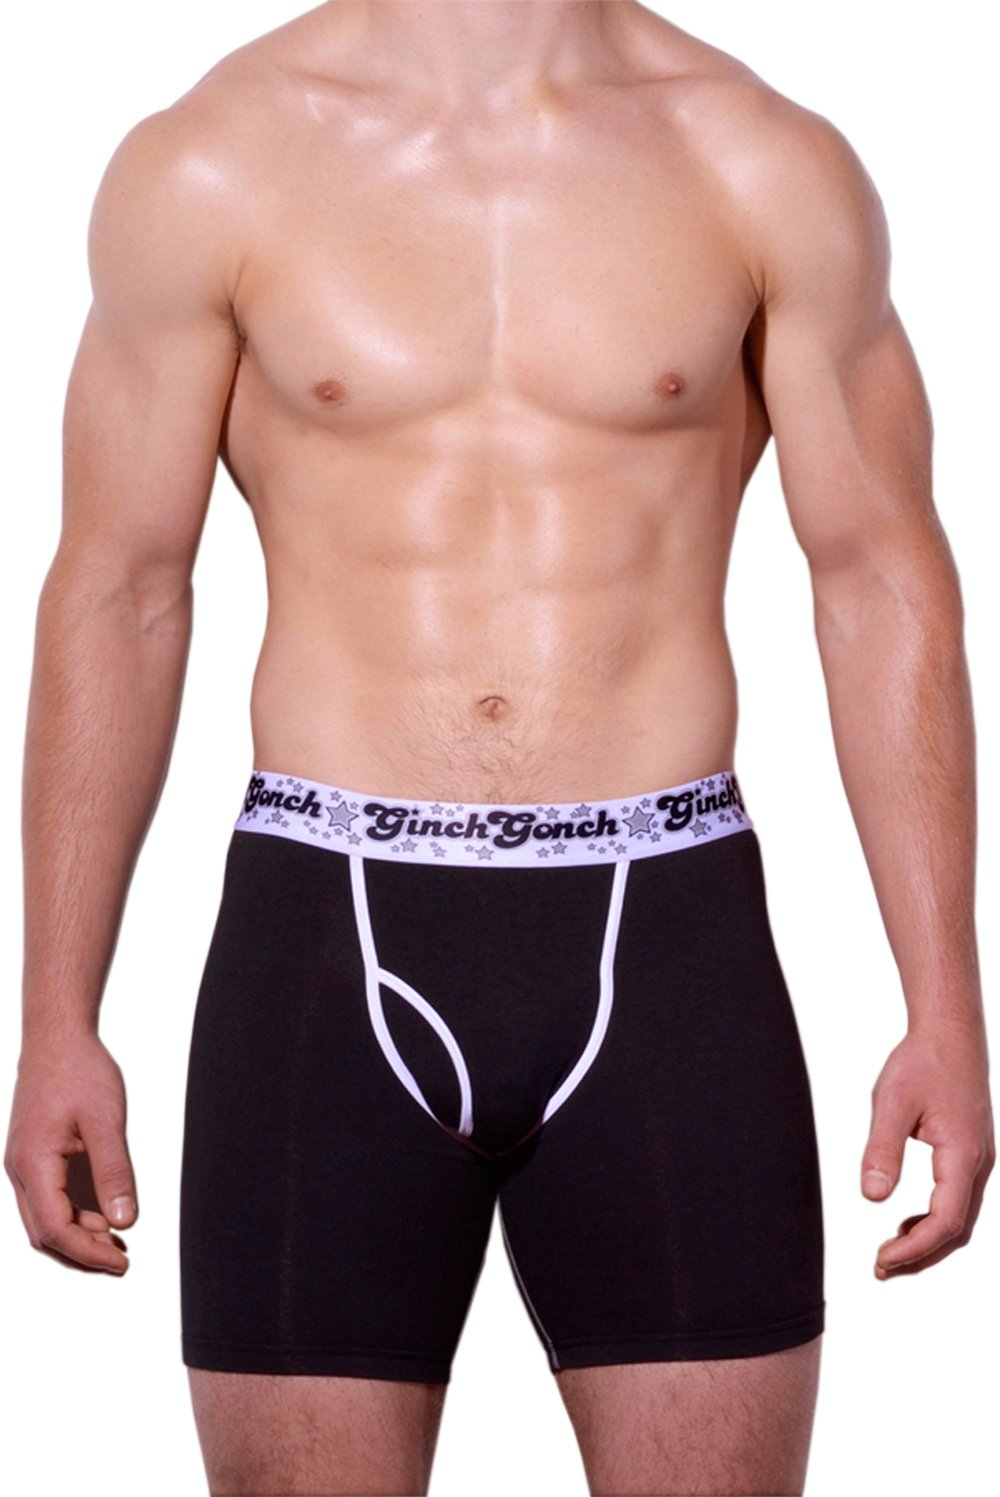 Ginch Gonch Black Magic Boxer Brief Black men's underwear with black panels and white trim binding printed waistband front